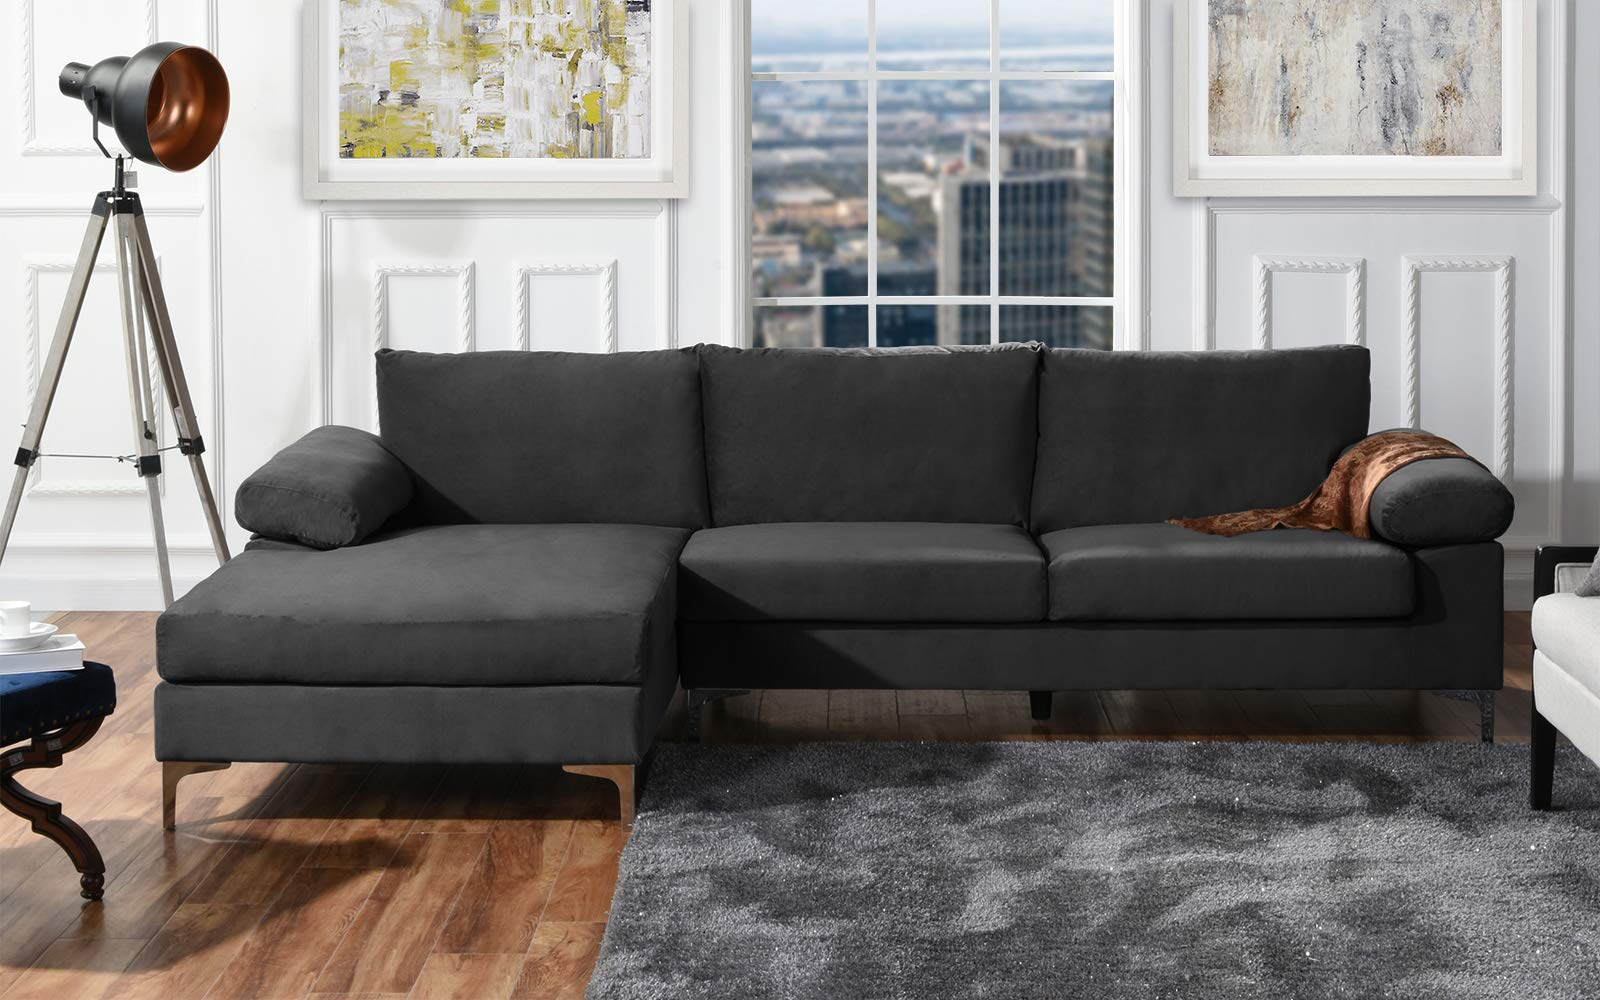 Modern Large Velvet Fabric Sectional Sofa, L-Shape Couch with Extra Wide Chaise Lounge (Grey) by Divano Roma Furniture